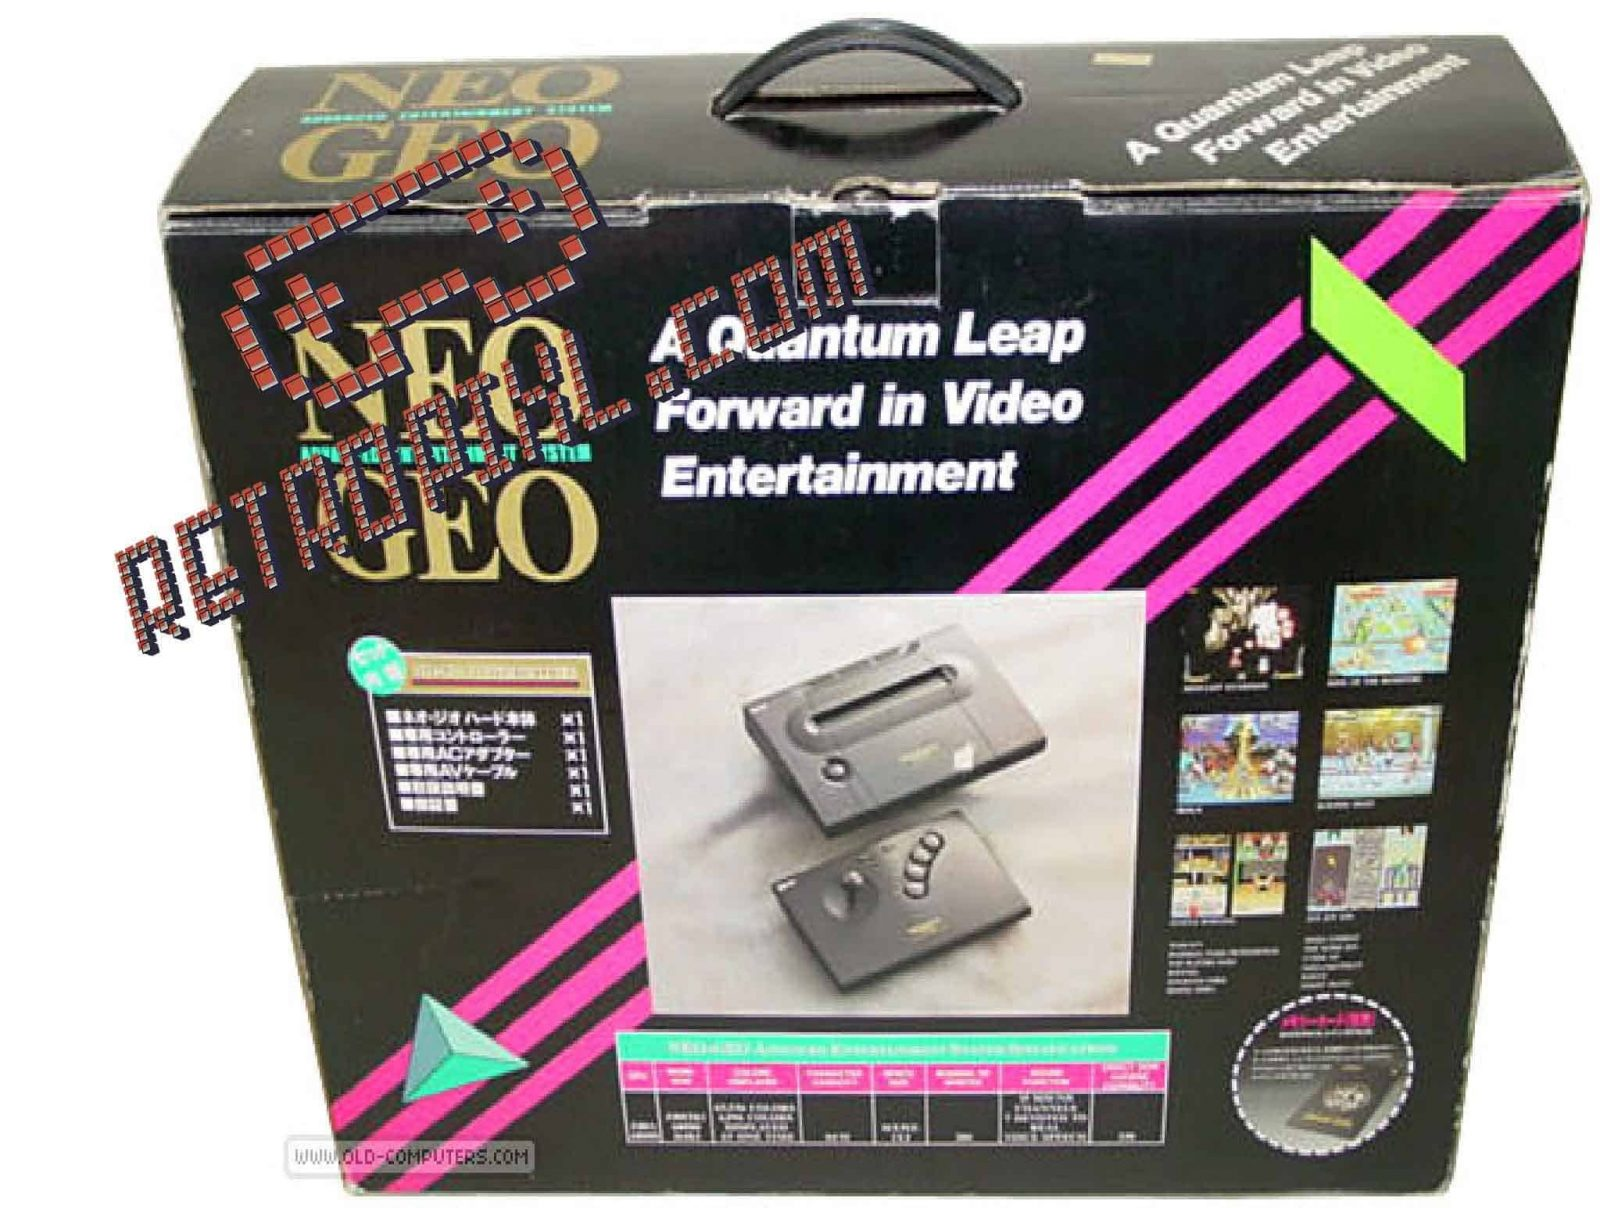 An image showing the packaging for the neo geo